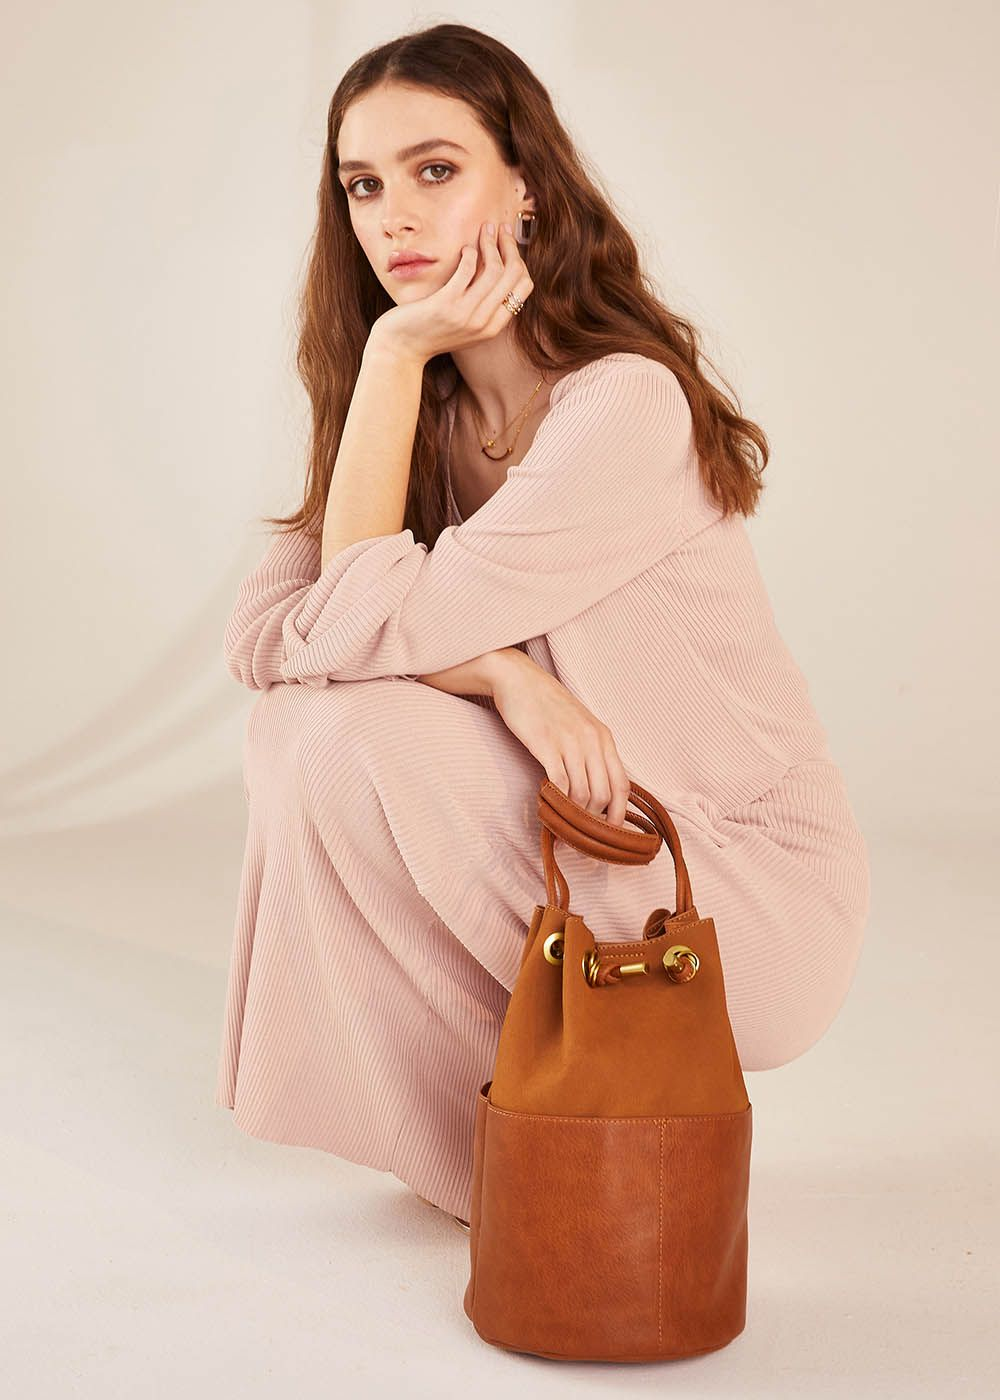 NAIMA LEATHER-COLORED BUCKET BAG